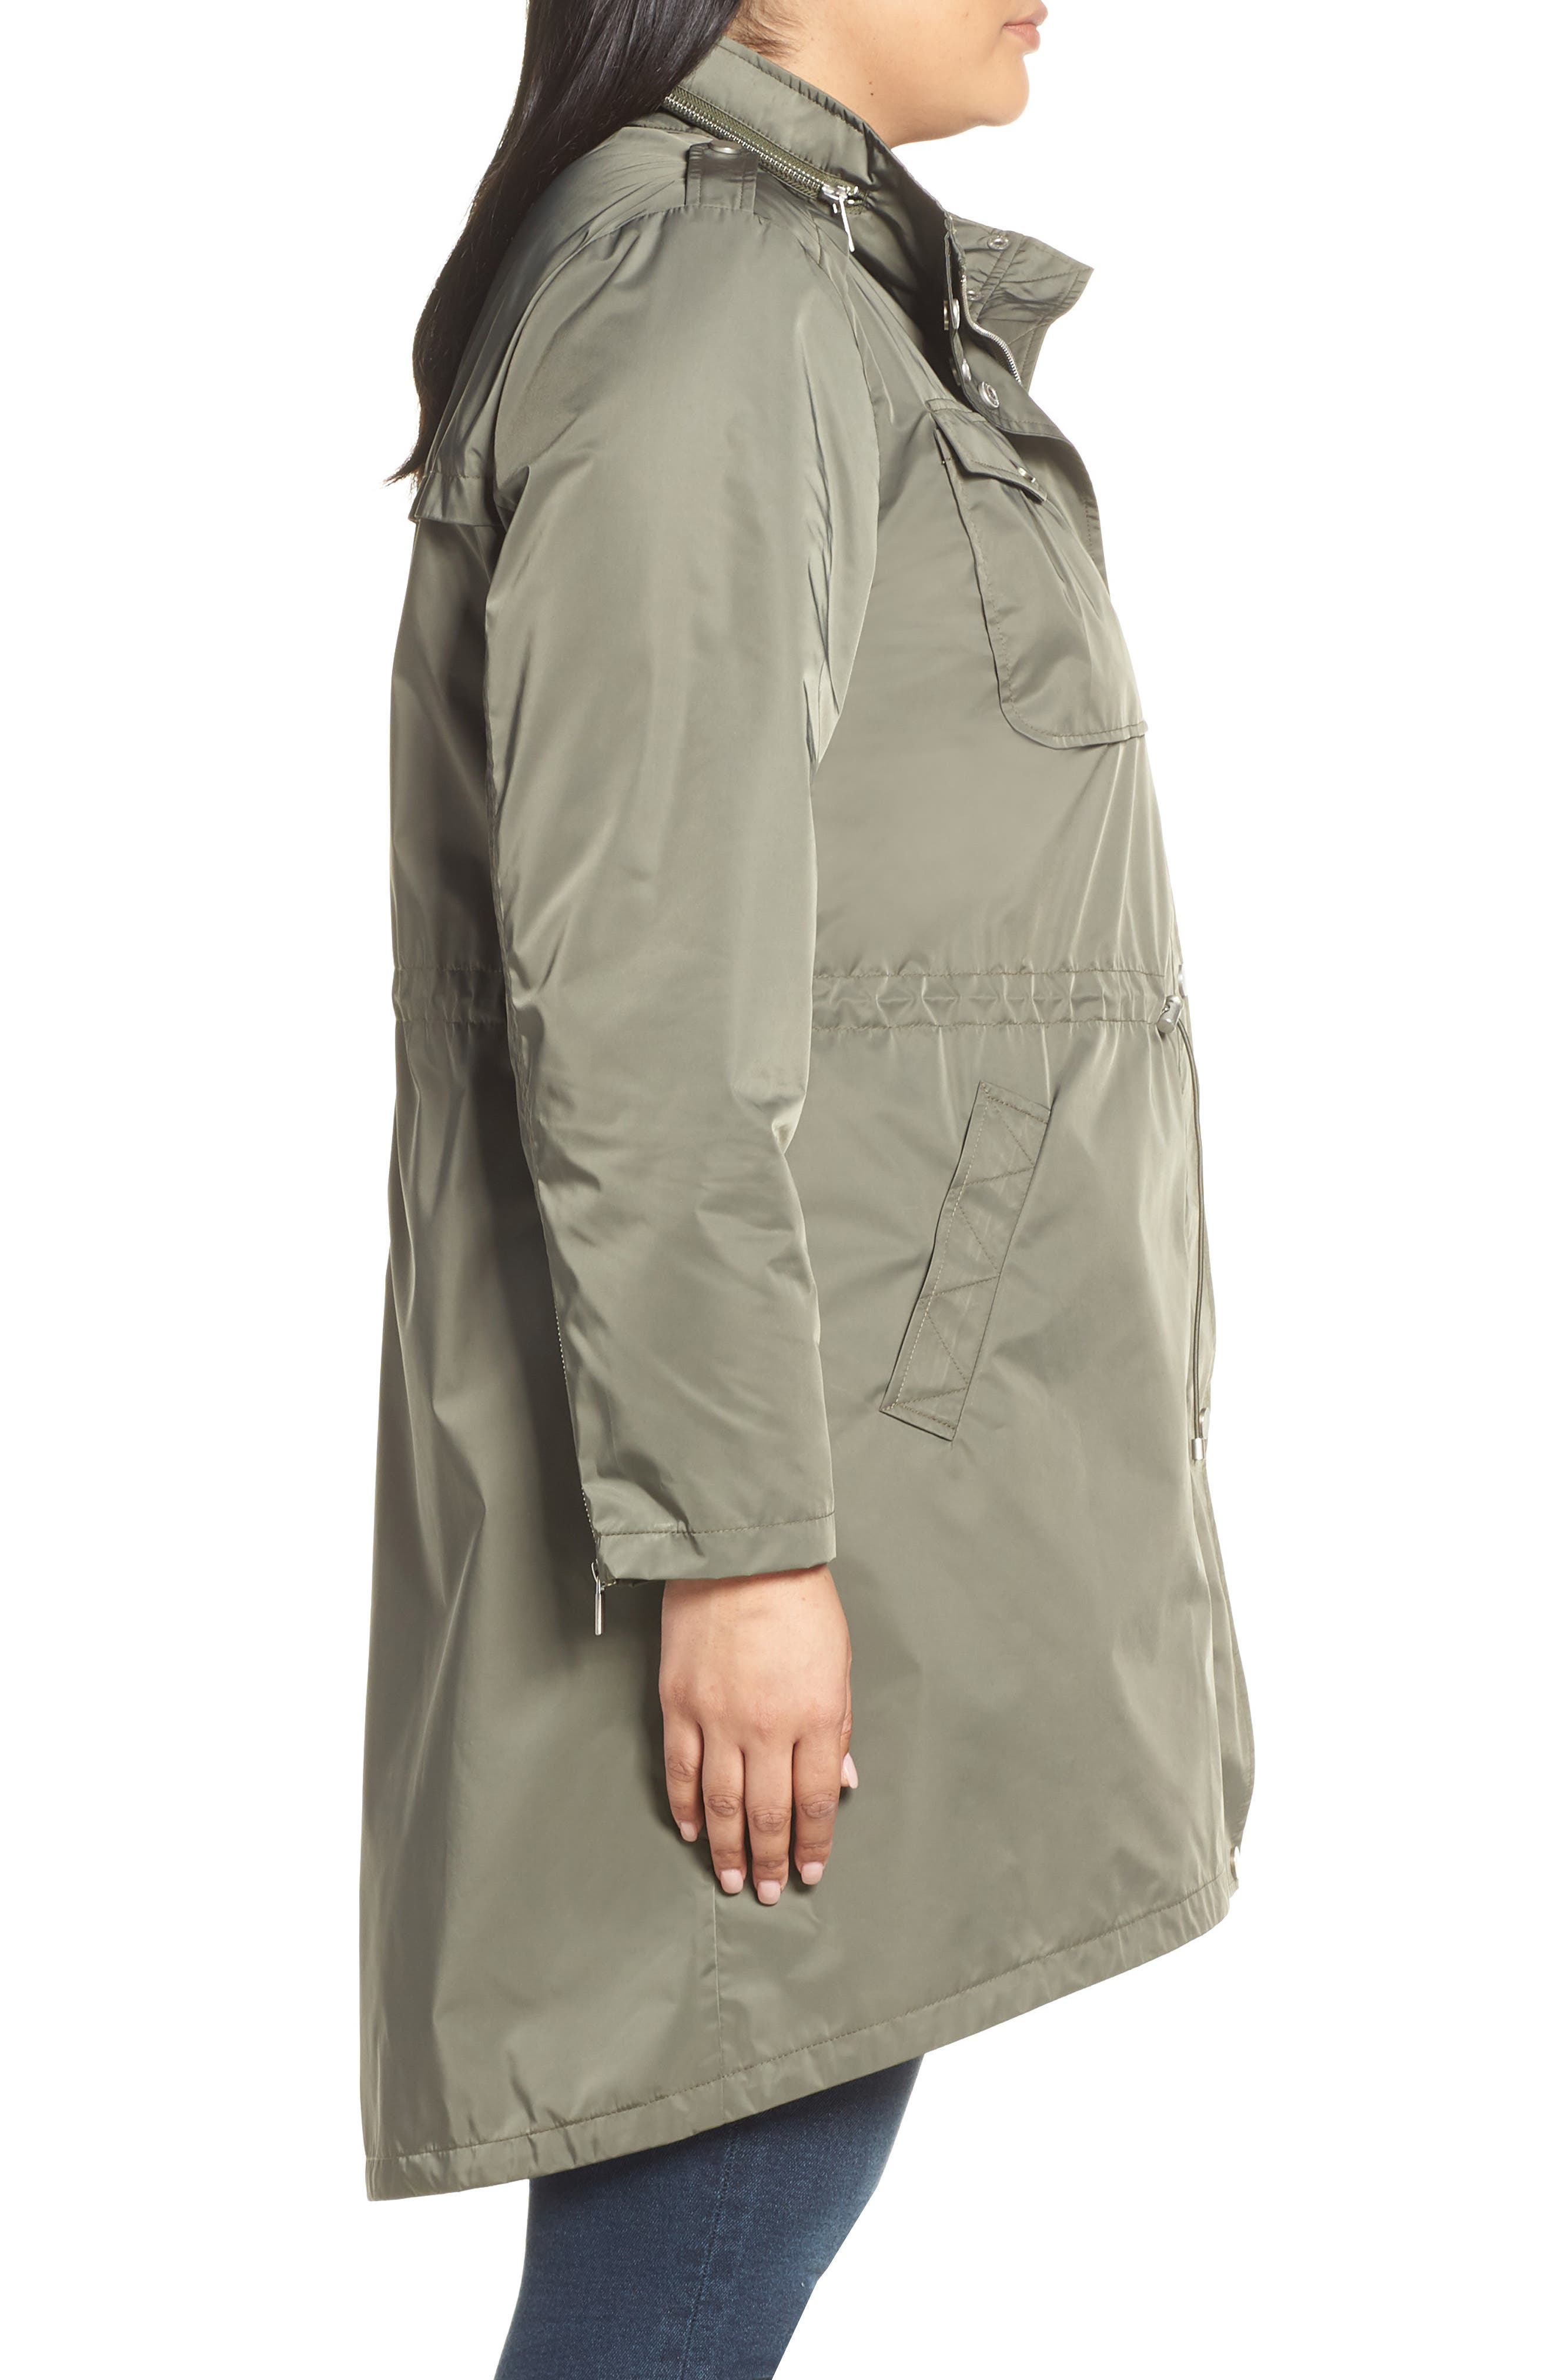 Badgley Mischka Dakota Raincoat,                             Alternate thumbnail 3, color,                             PALM